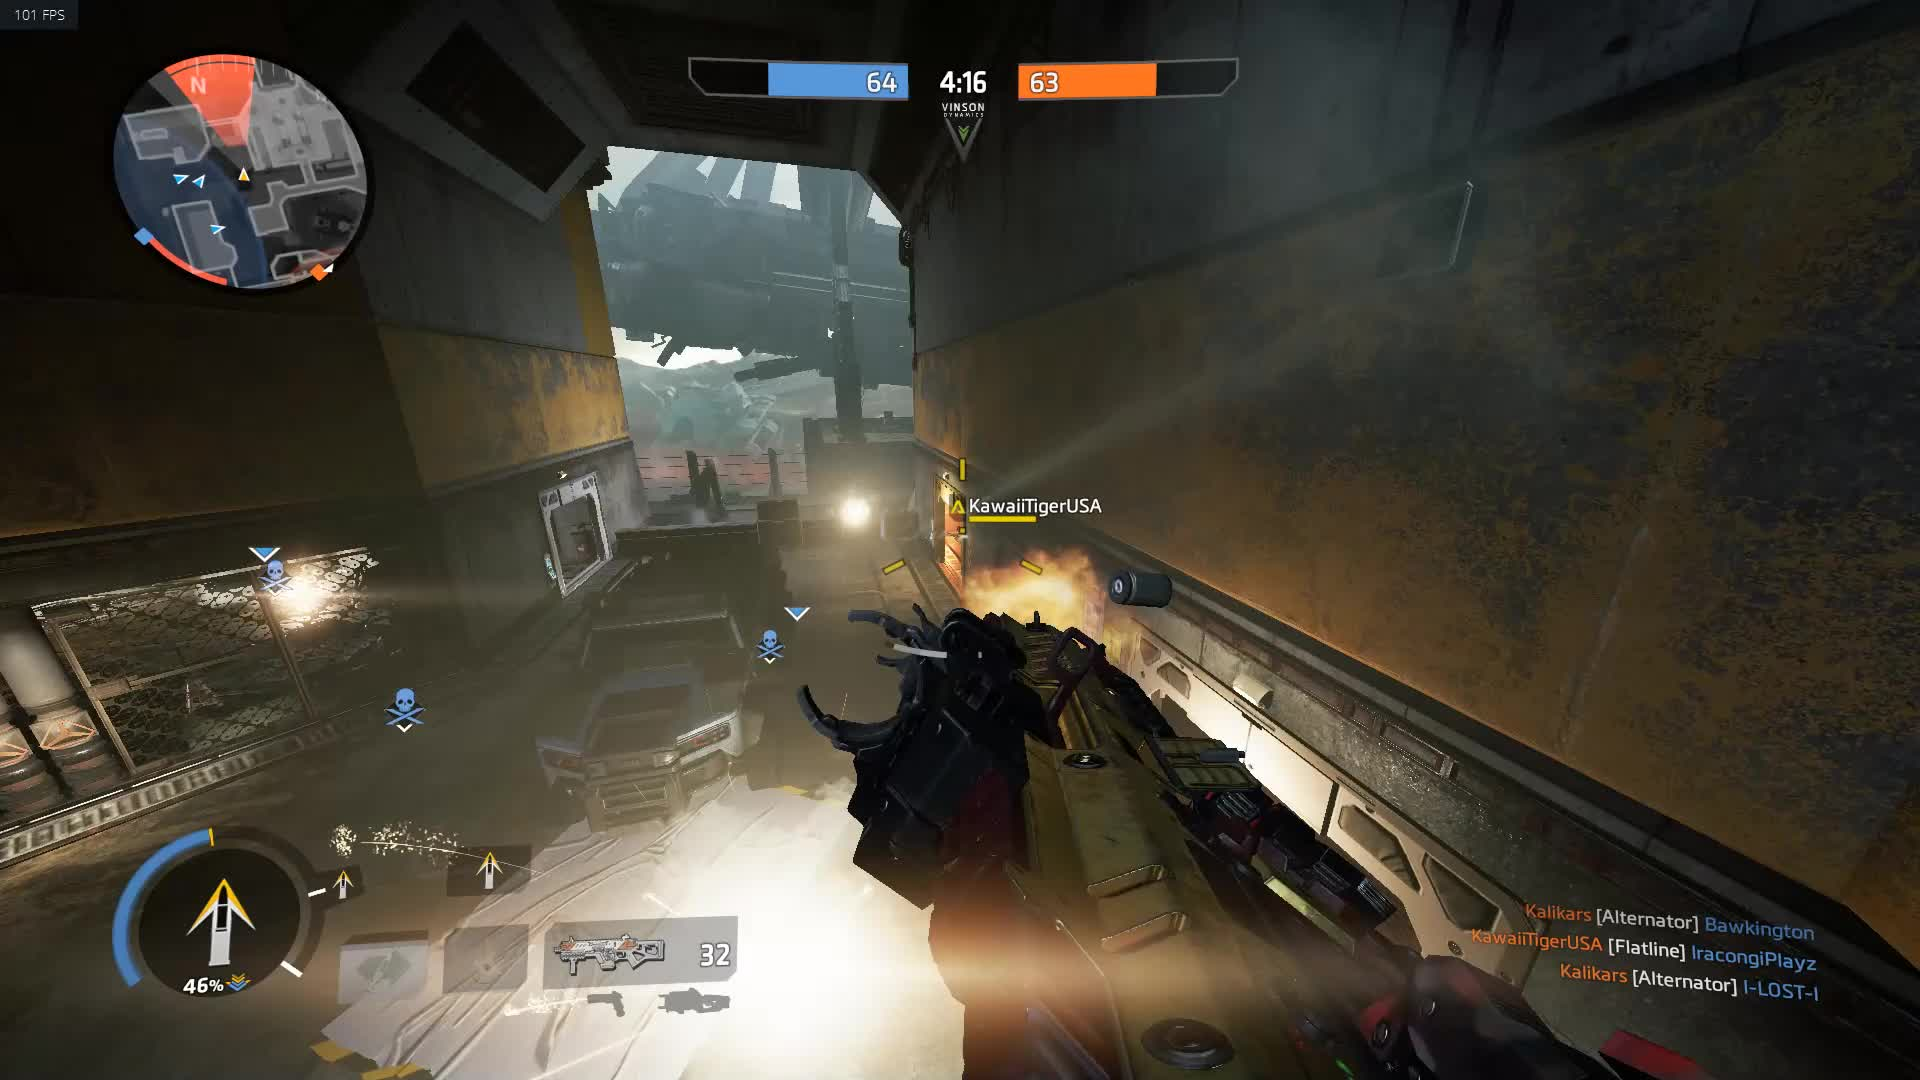 titanfall2, First Mega in a While GIFs